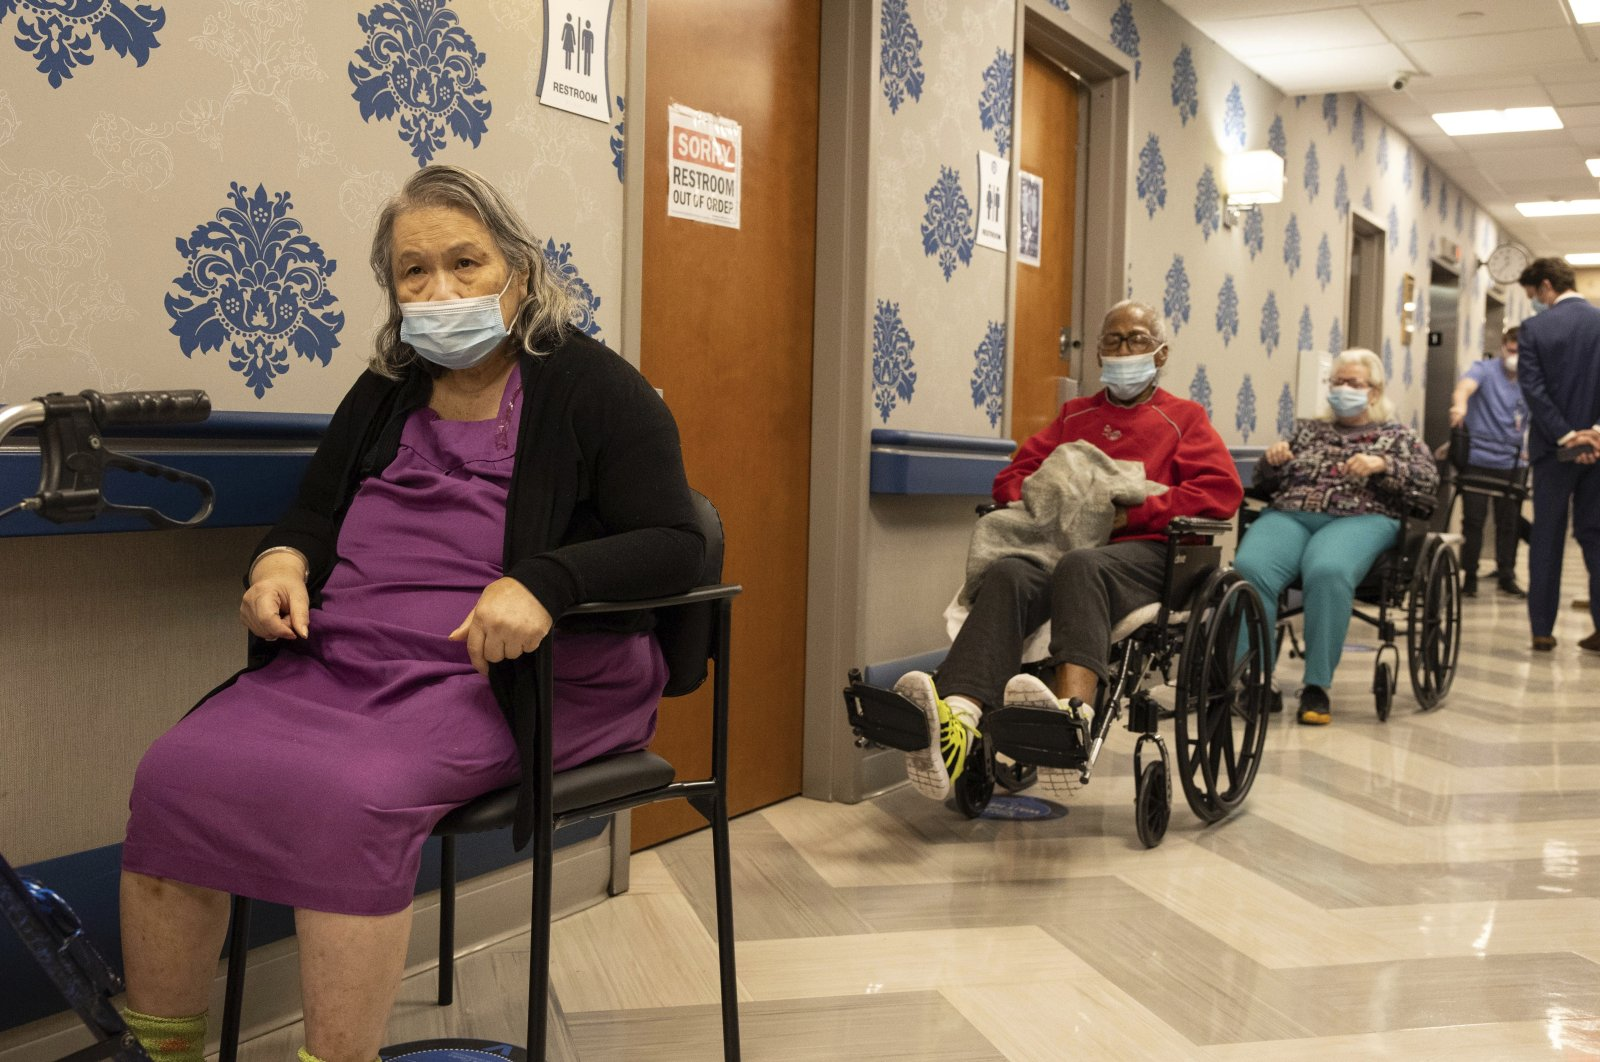 In this Jan. 15, 2021, file photo, nursing home residents wait in line for the COVID-19 vaccine at the Harlem Center for Nursing and Rehabilitation, a nursing home facility, in the Harlem neighborhood of New York City, U.S. (AP photo)